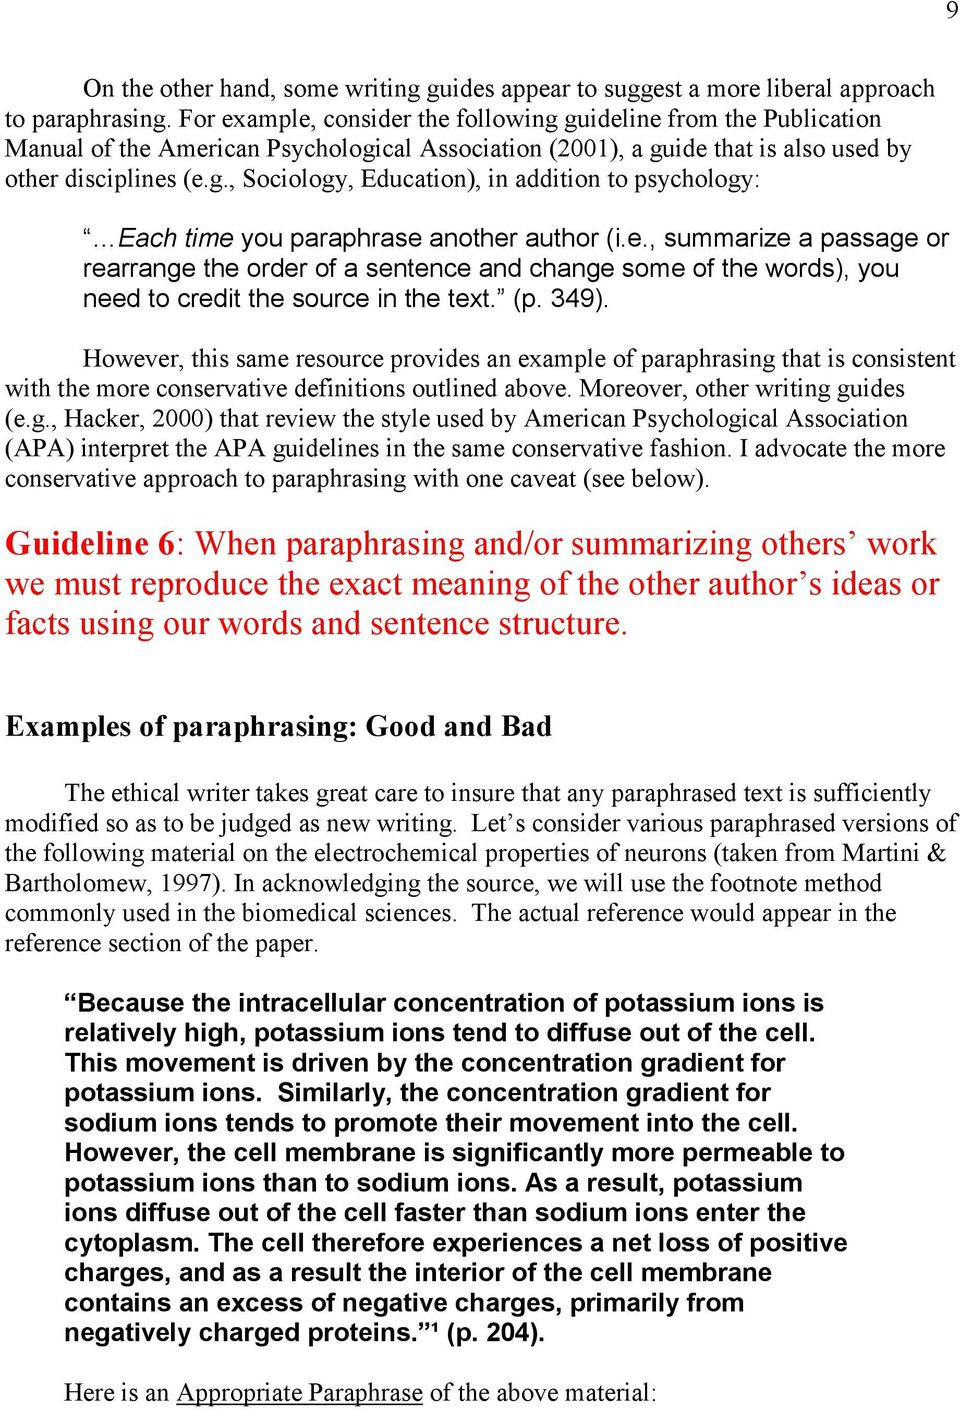 avoiding plagiarism self plagiarism and other questionable e summarize a passage or rearrange the order of a sentence and change some